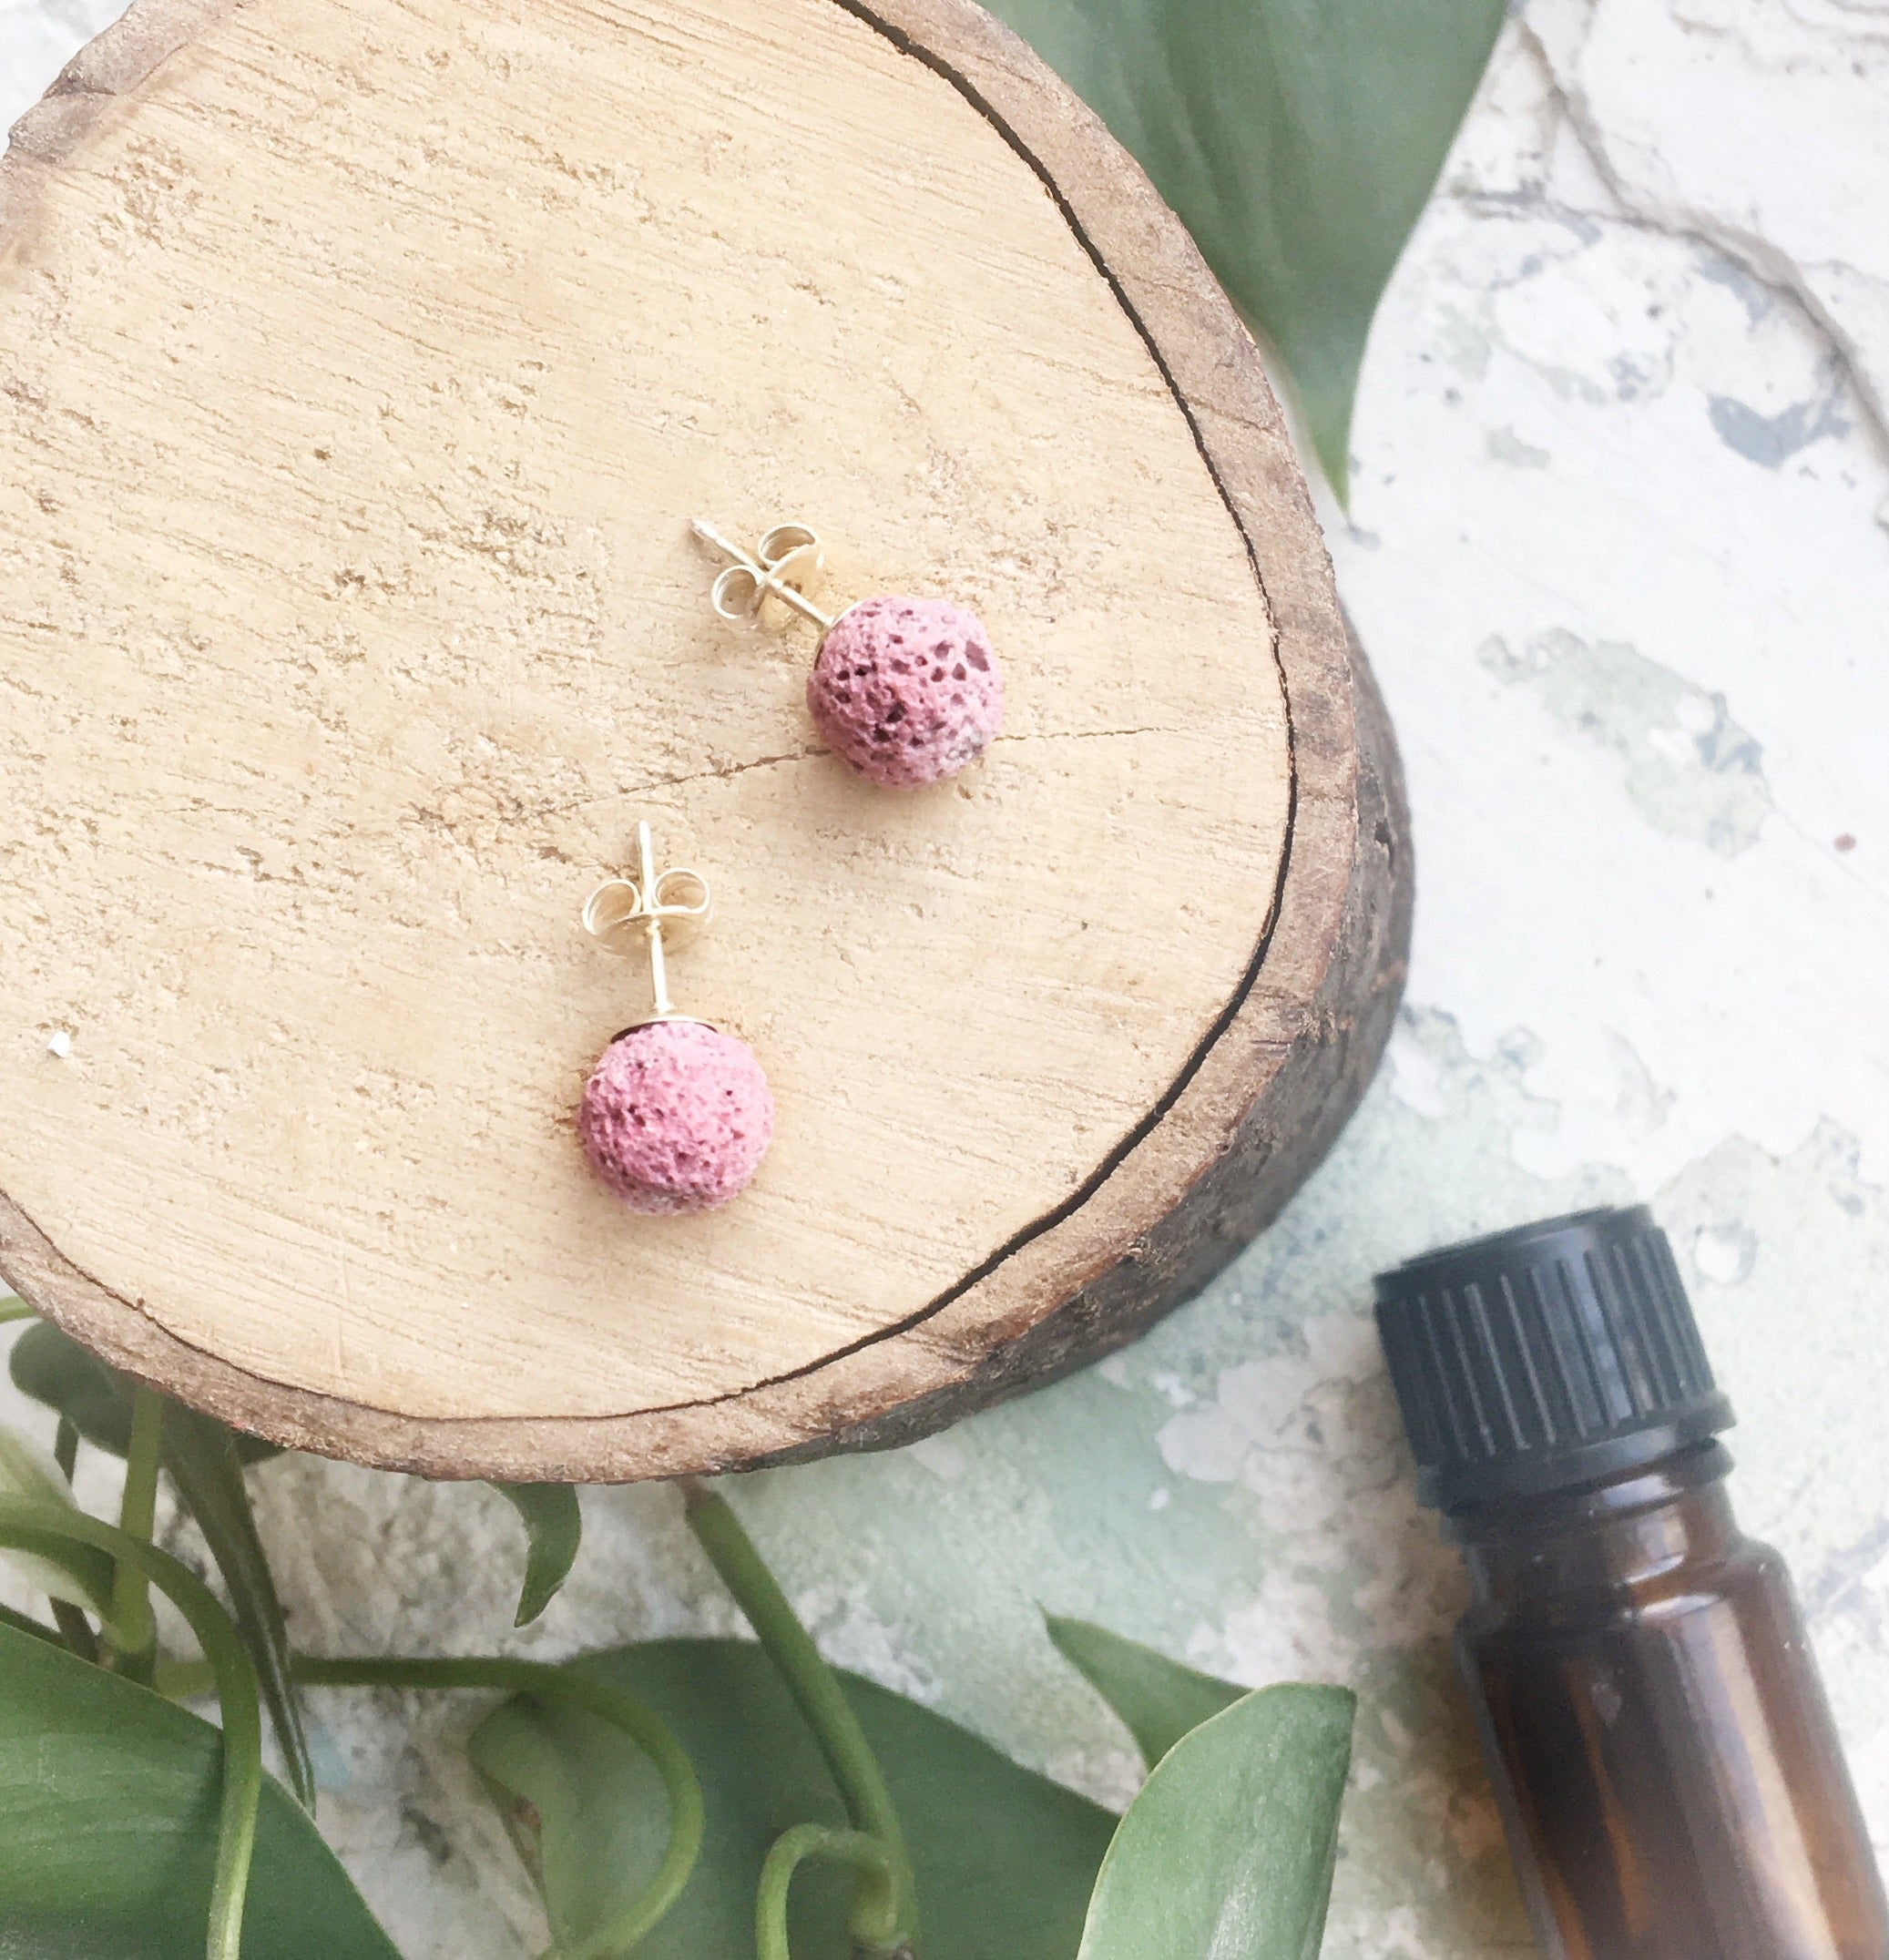 Rose Diffuser Earrings - Medium 8mm